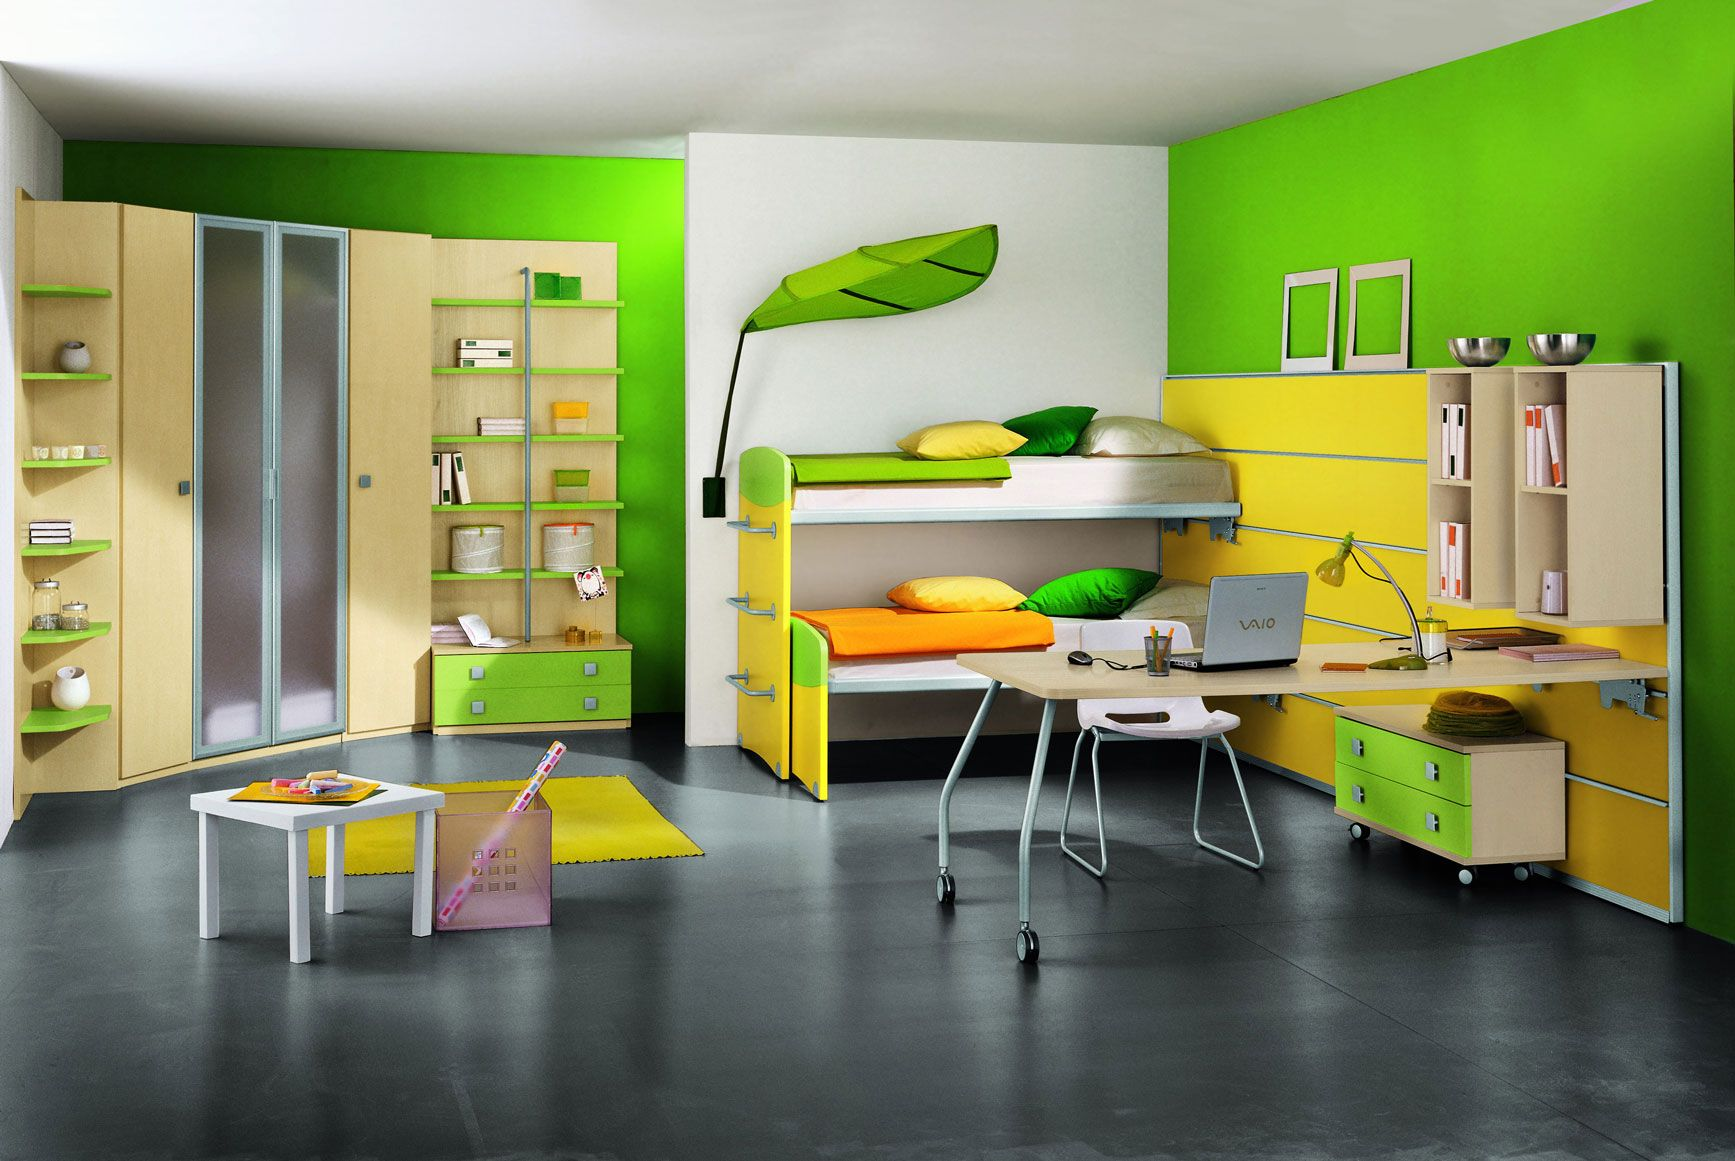 Exceptional Kids Room, Modern Kids Room Lovely Kids Rooms Paint With Star On The  Ornament Great Inspiration Design Modern Bedroom For Your Children:  Fascinating Kidu0027s ...